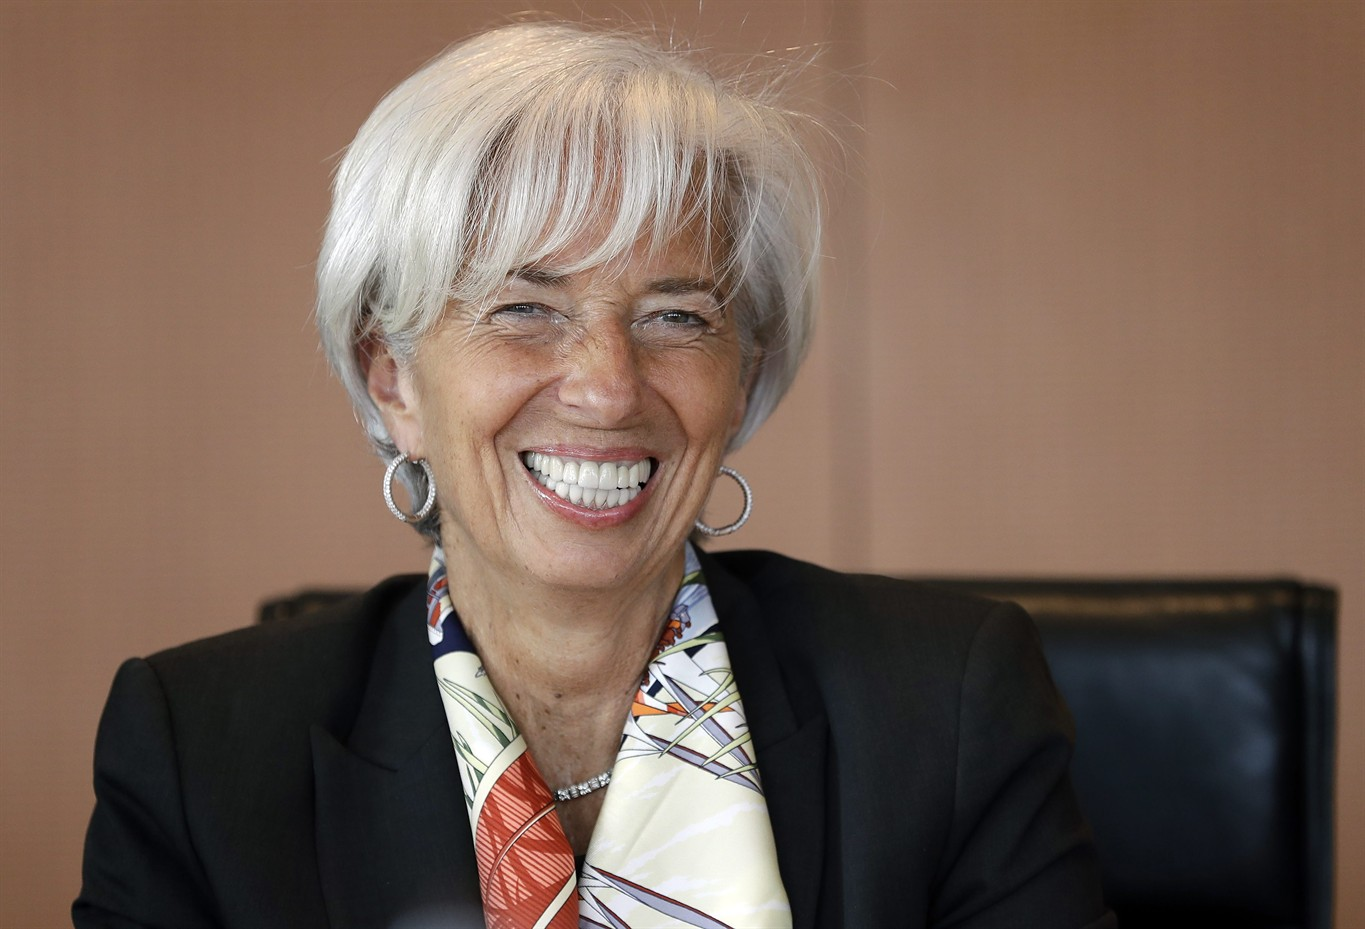 IMF leader Lagarde warns against trade protectionism